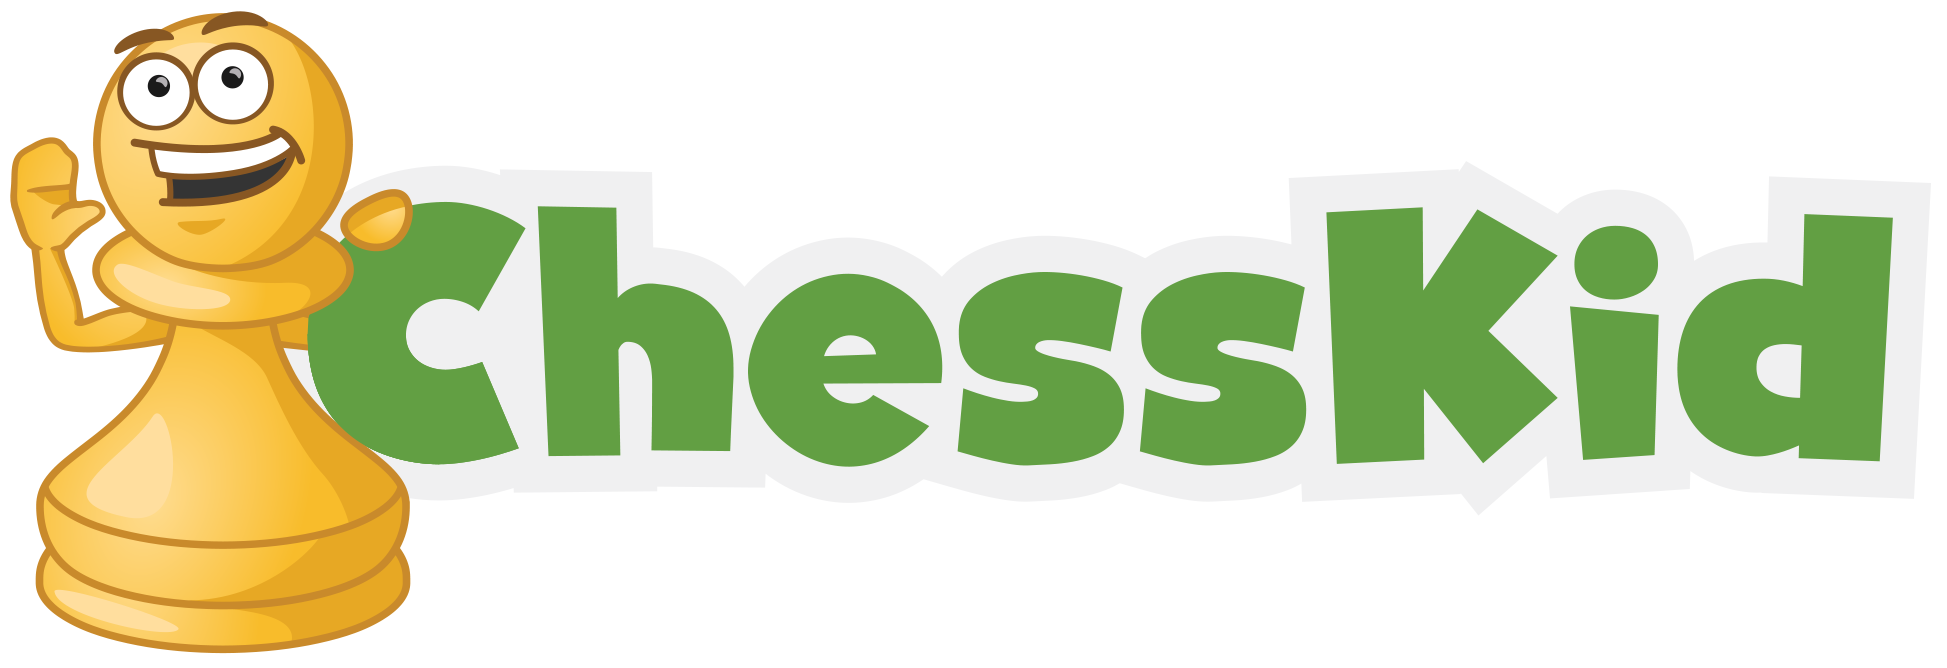 The Best Chess Gifts - Chesskid membership.png